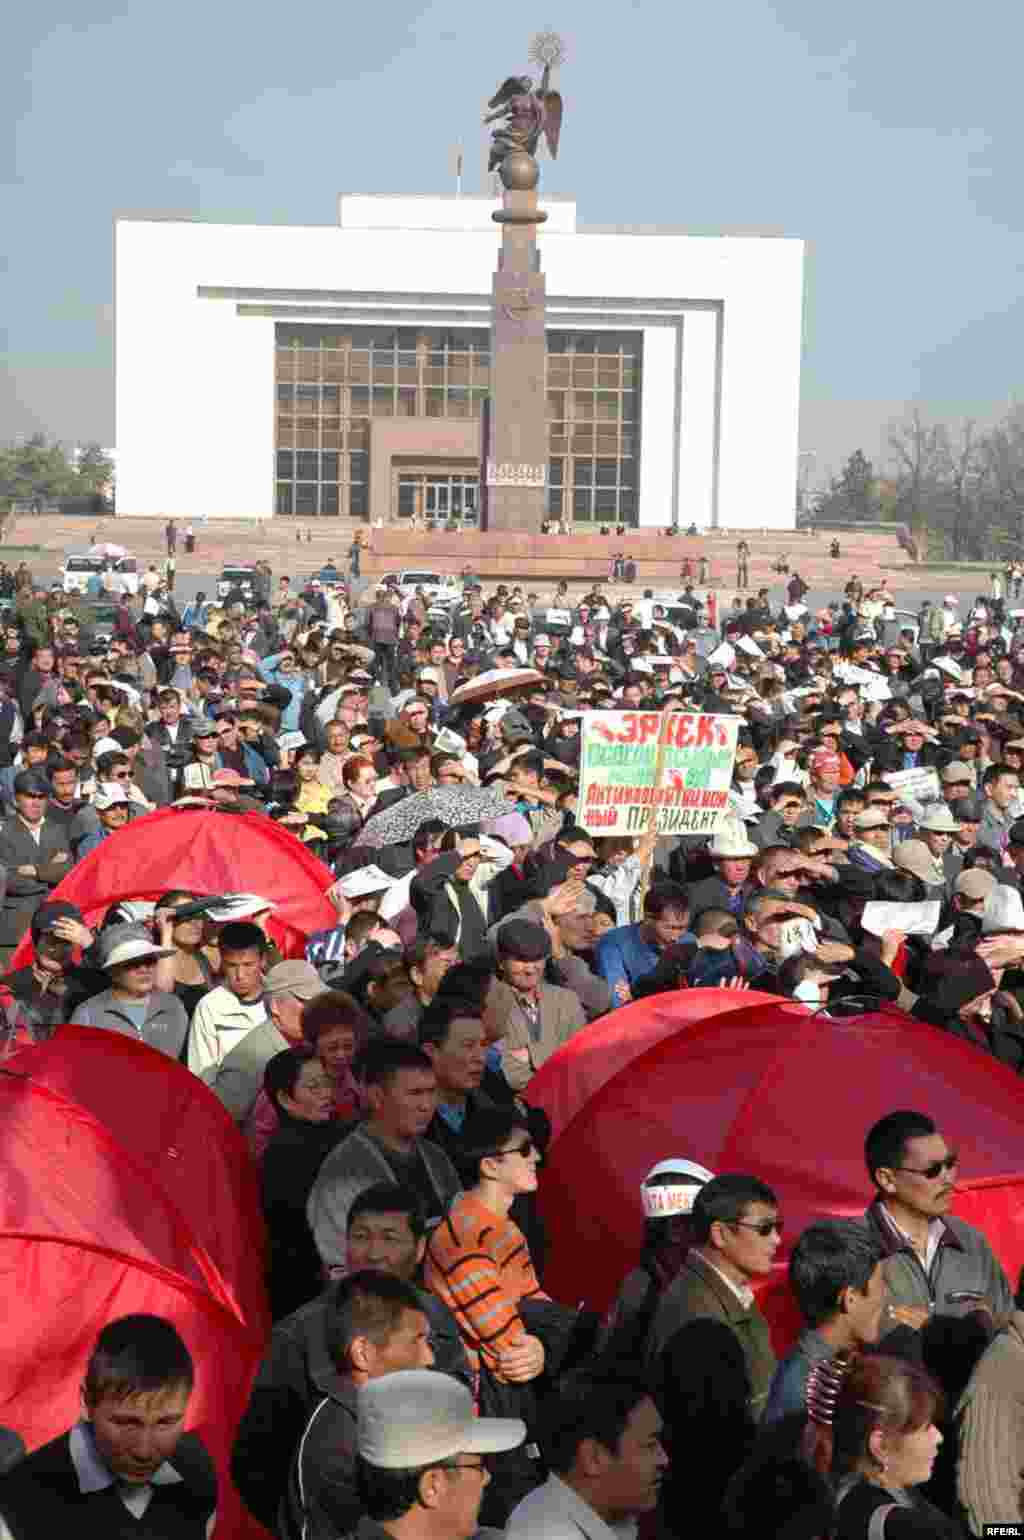 Demonstrators in Bishkek on November 6 (RFE/RL) - In the run-up to the protests, President Bakiev met several times with opposition leaders, but the meetings produced no results.